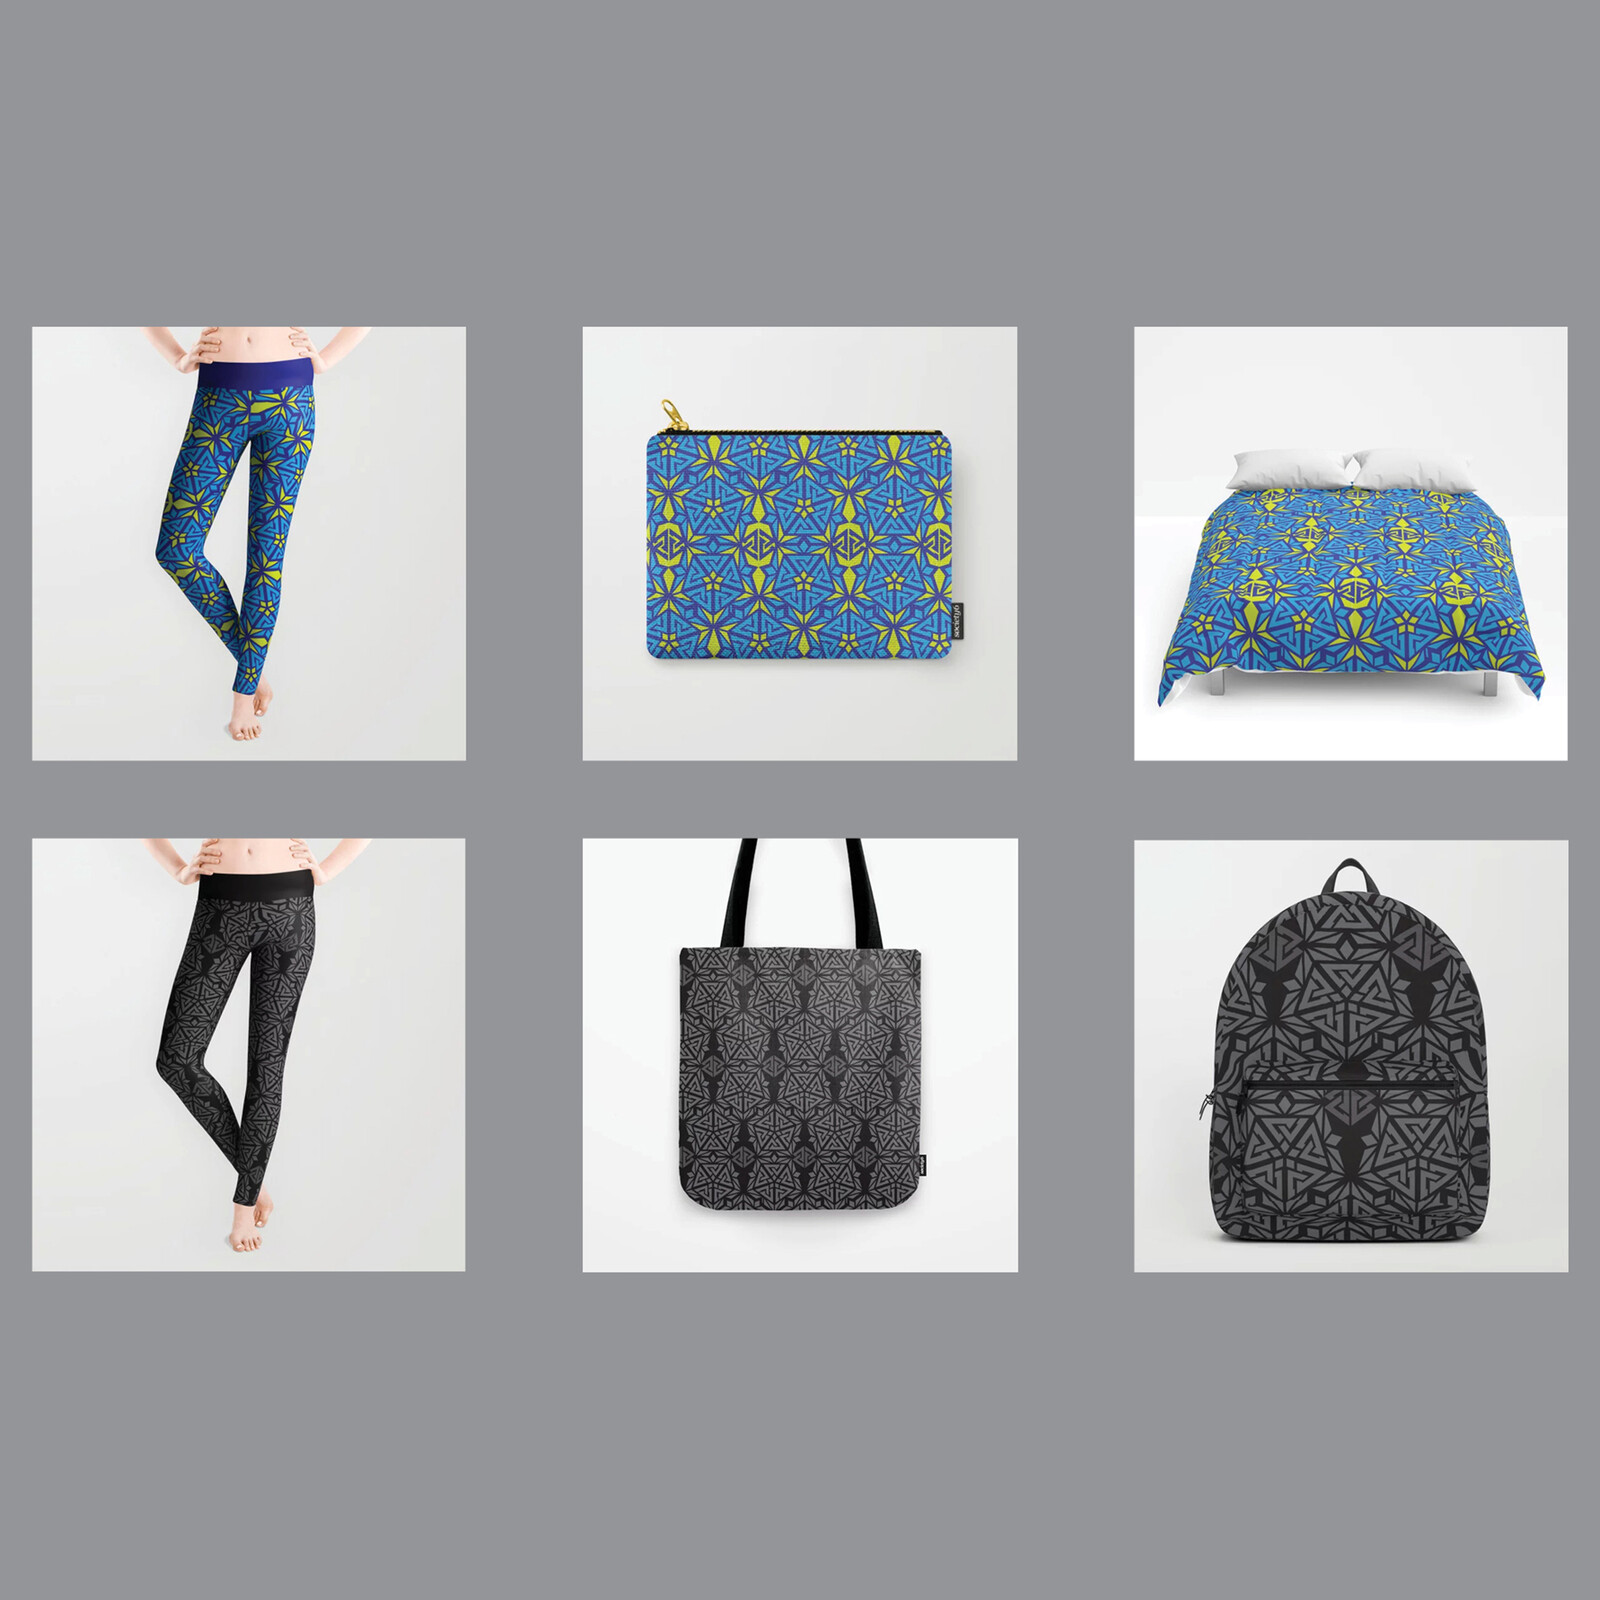 products with original design and pattern